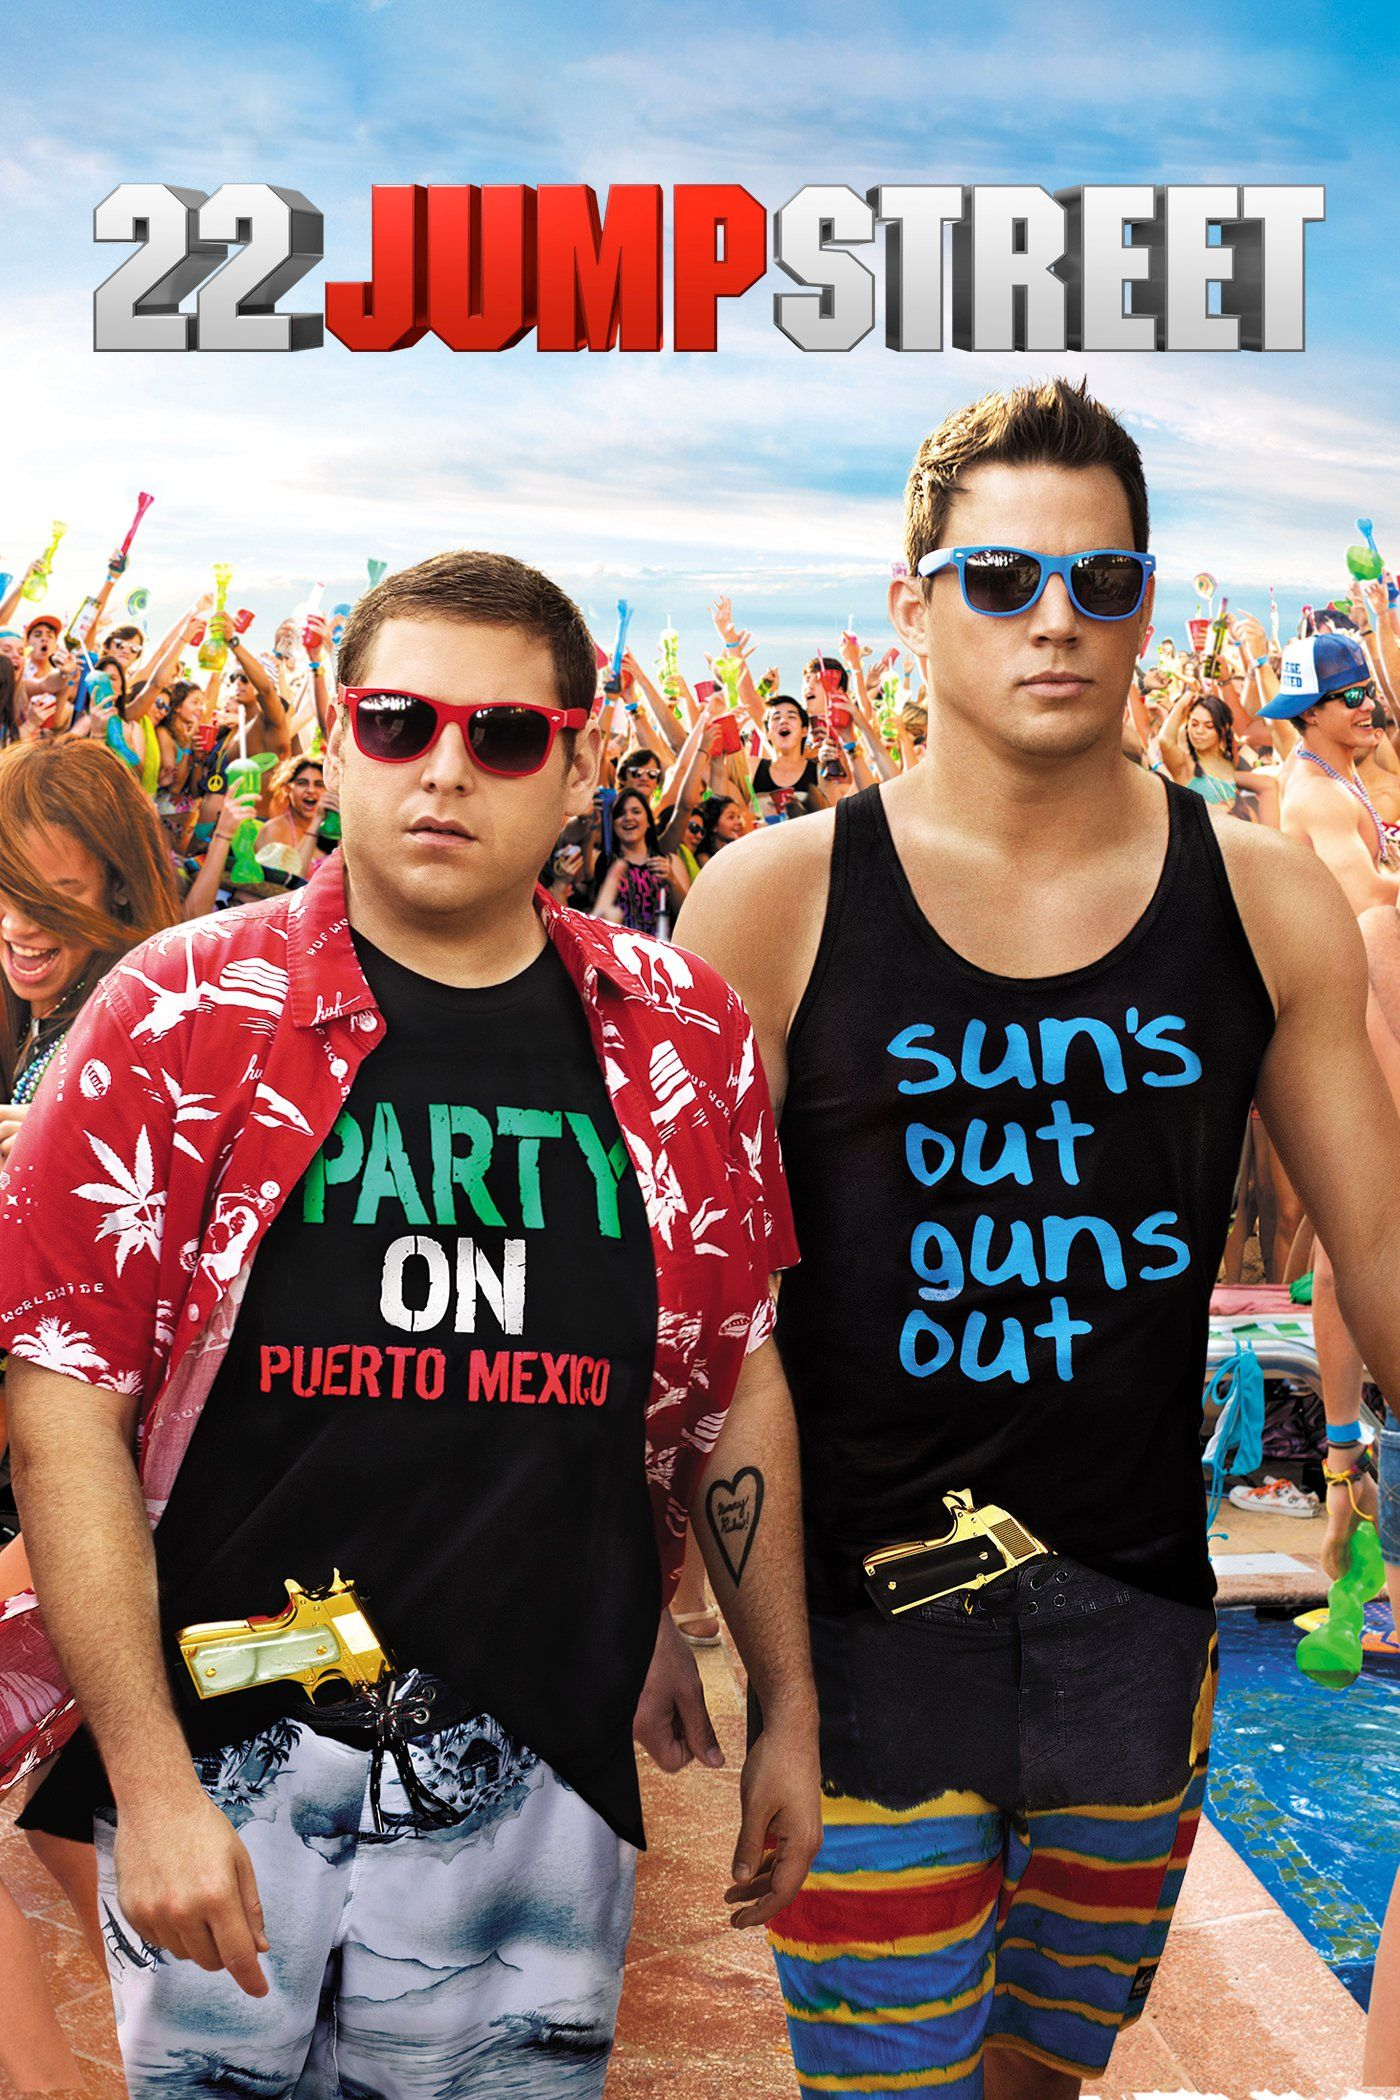 Watch Movie Online 22 Jump Street Free Download Full Hd Quality